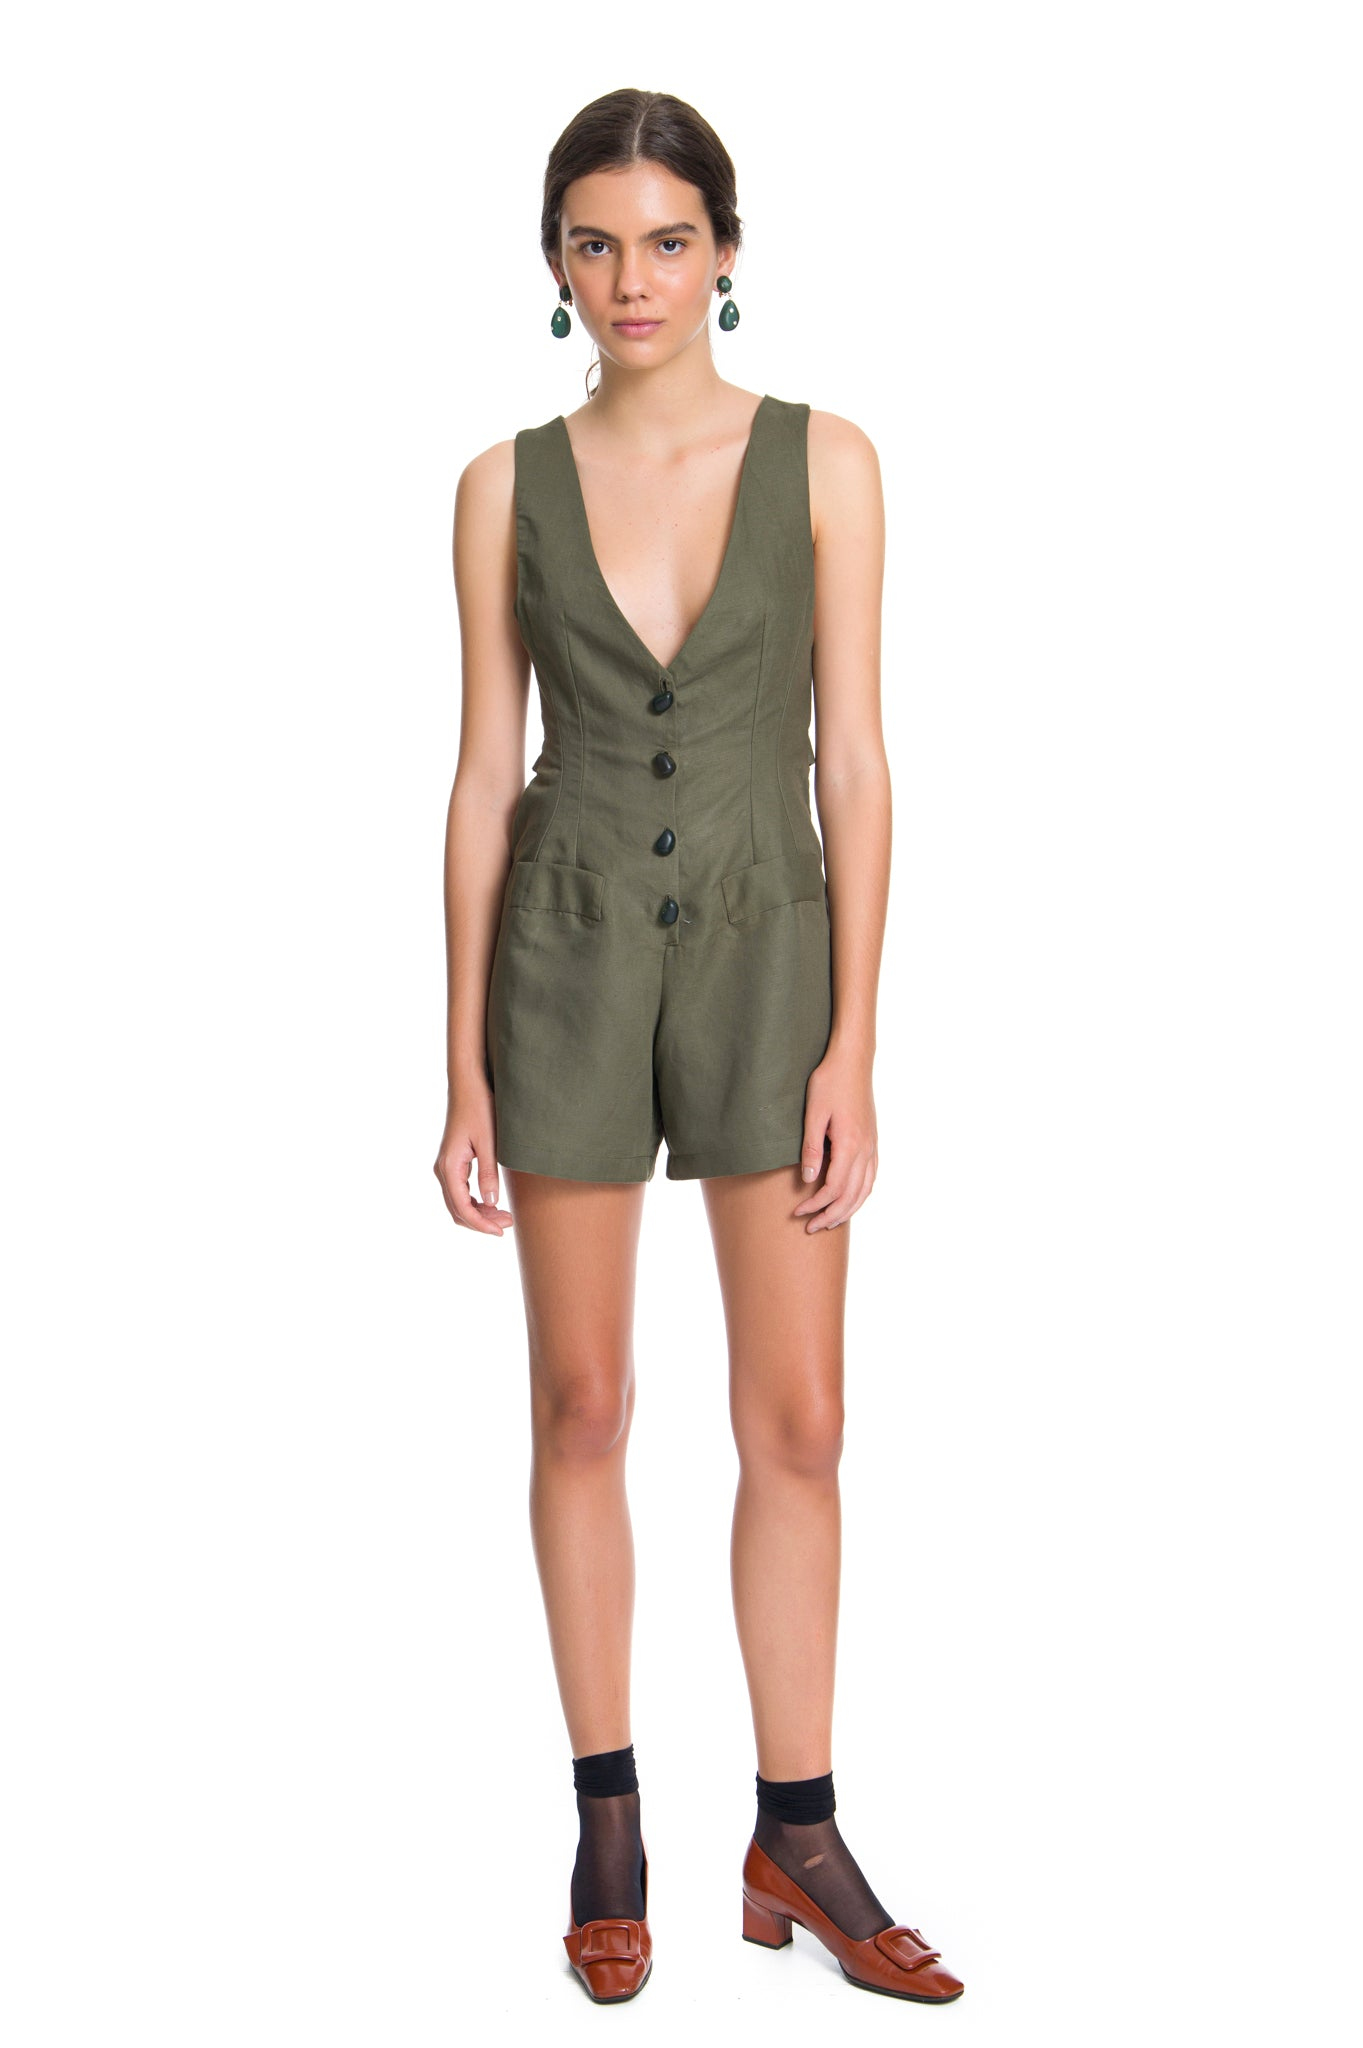 MILITARY COCTEAU PLAYSUIT